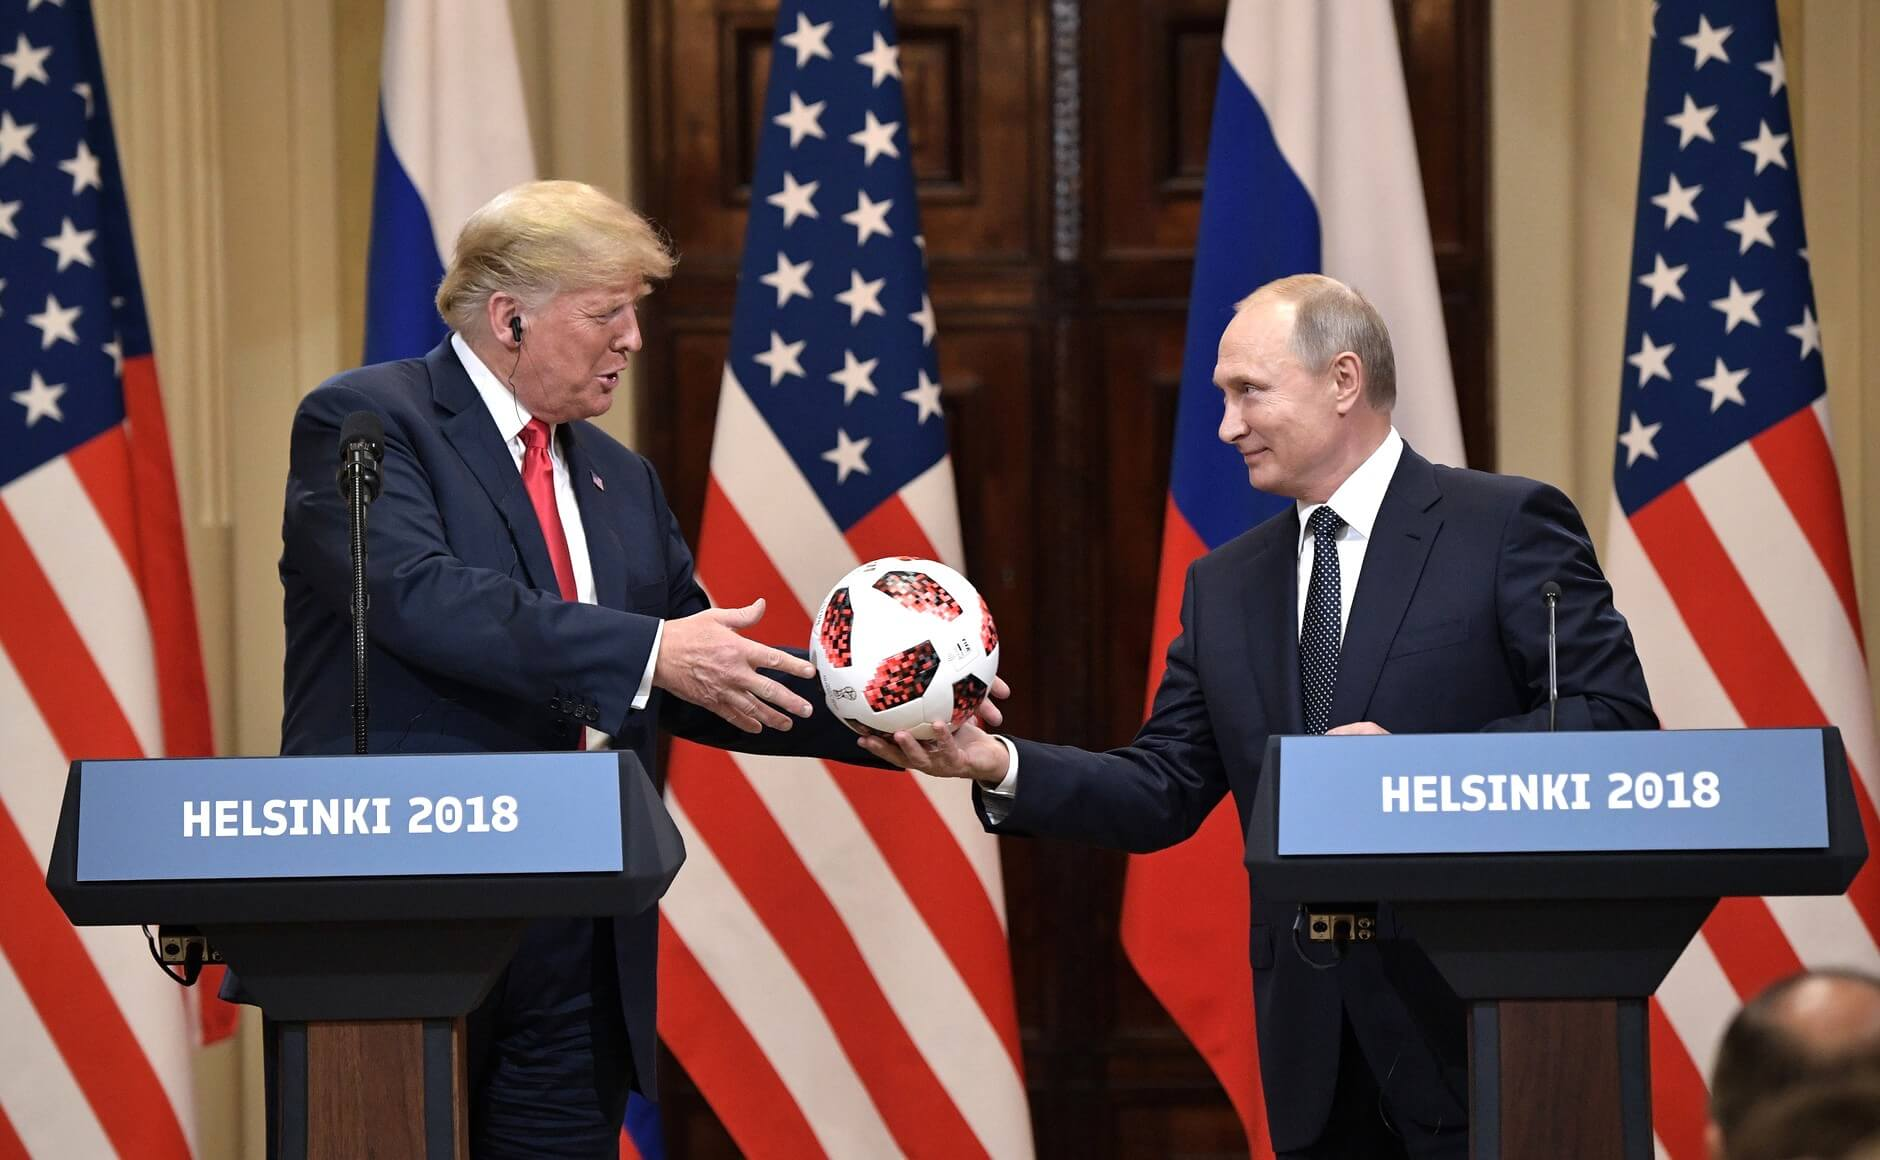 Vladimir Putin and Donald Trump in Helsinki in 2018. Wikimediacommons